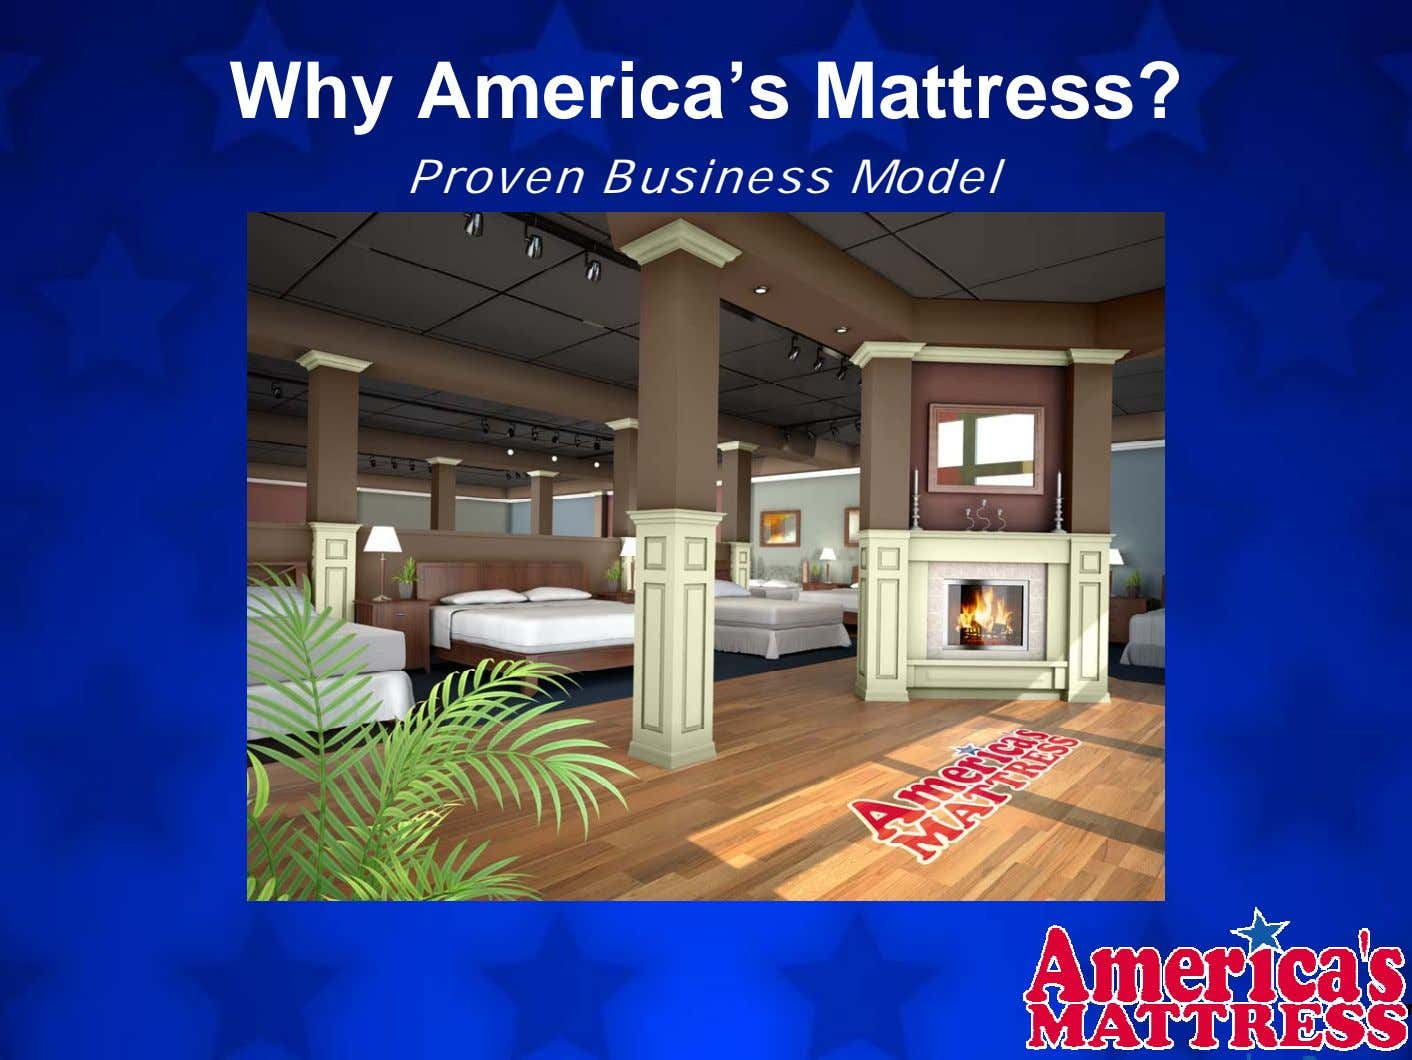 Why America's Mattress? Proven Business Model